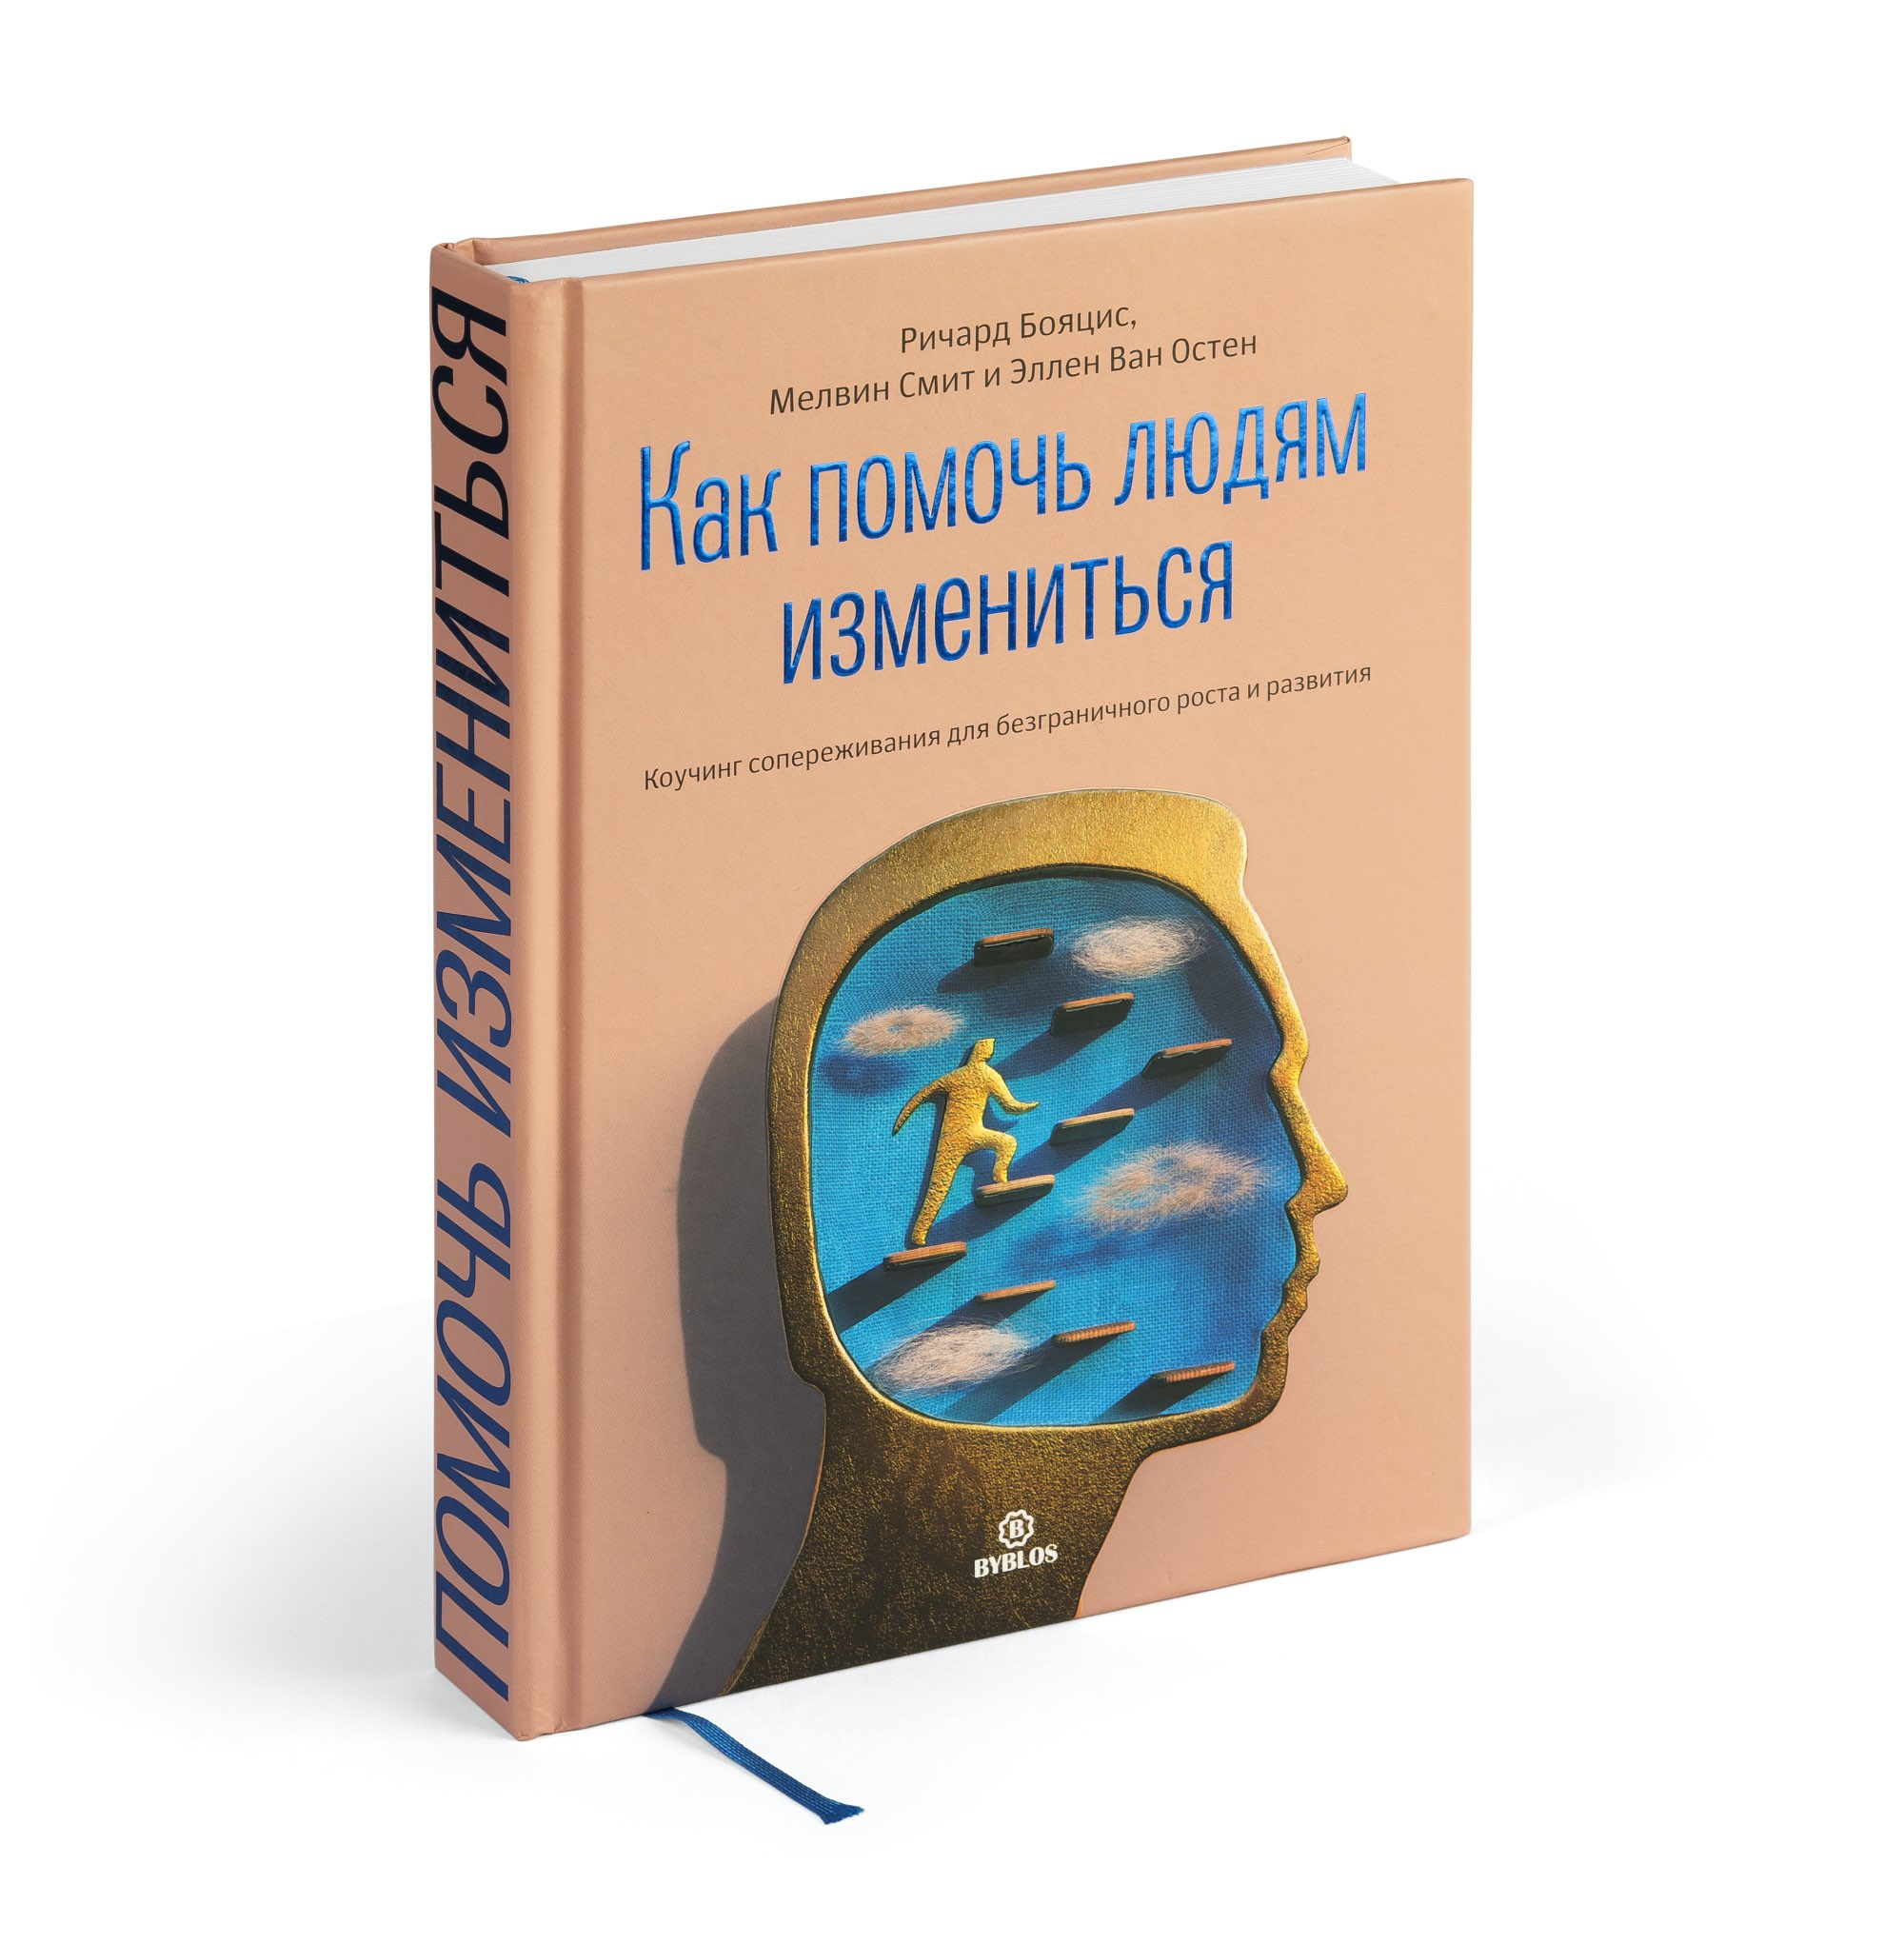 Helping People Change (in Russian)